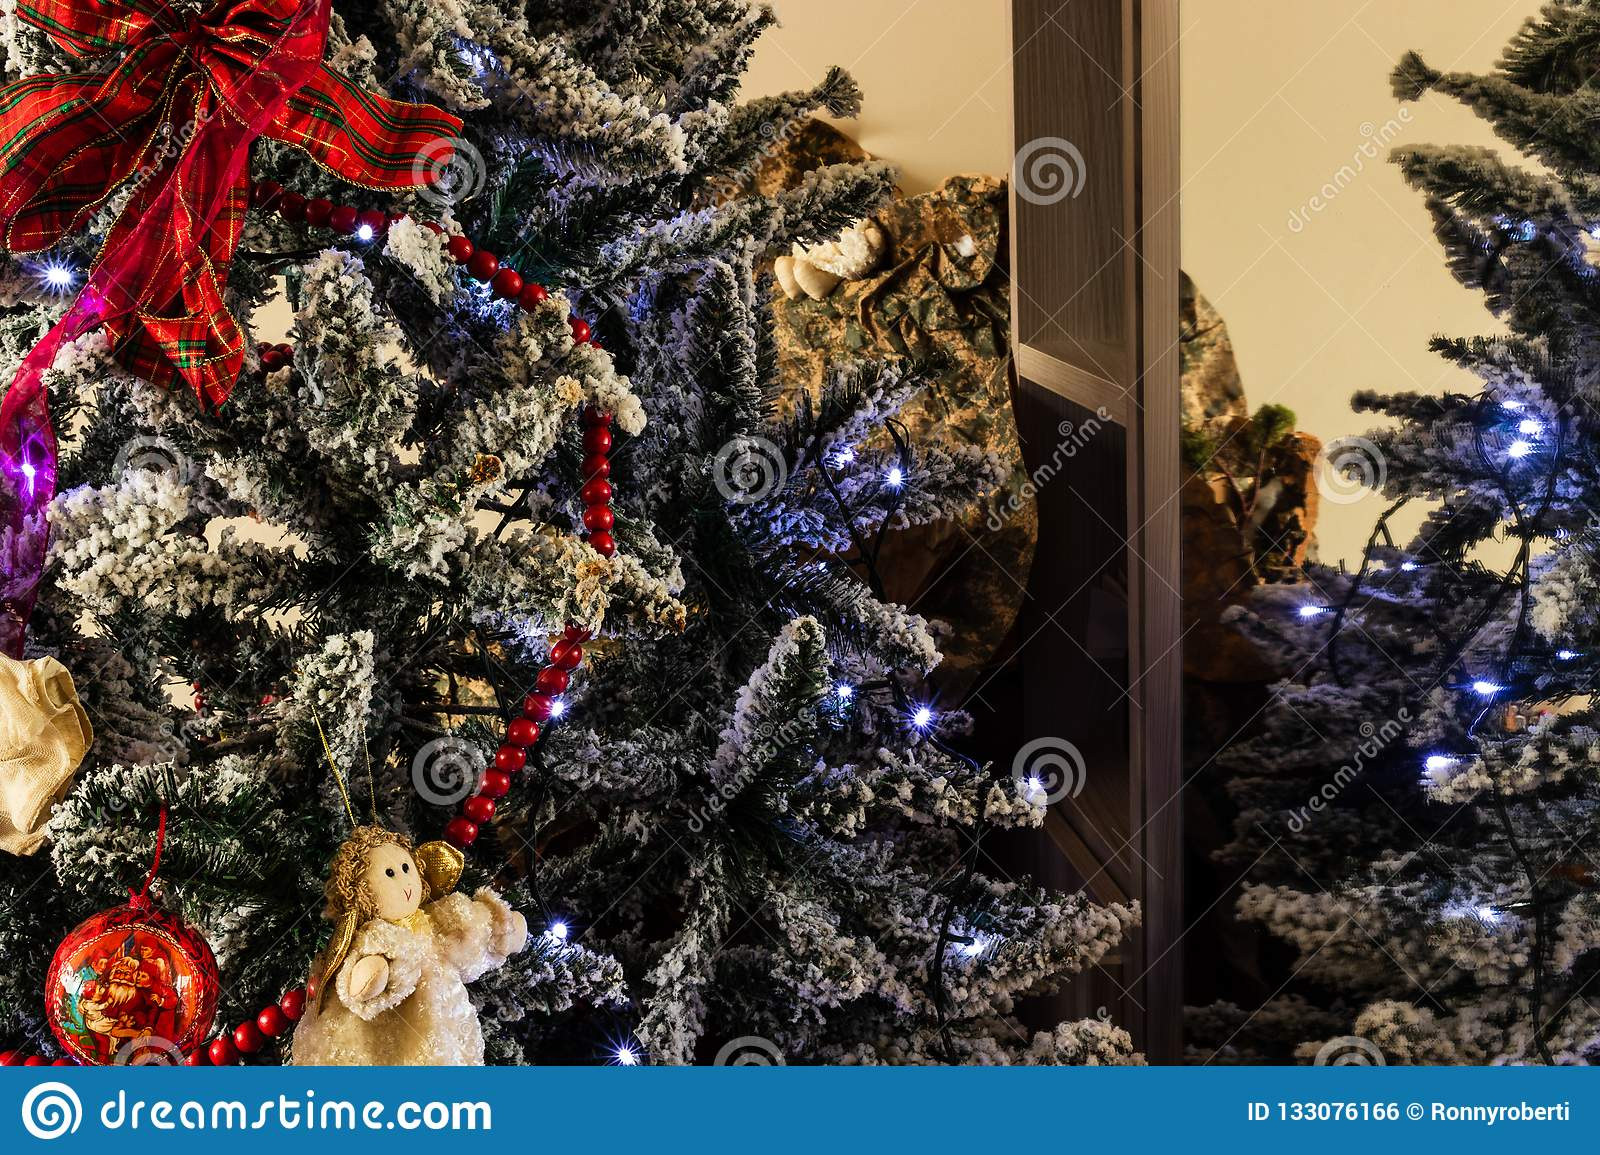 Living Room Christmas House Decorations Inside.Christmas Tree In The House Stock Photo Image Of Home